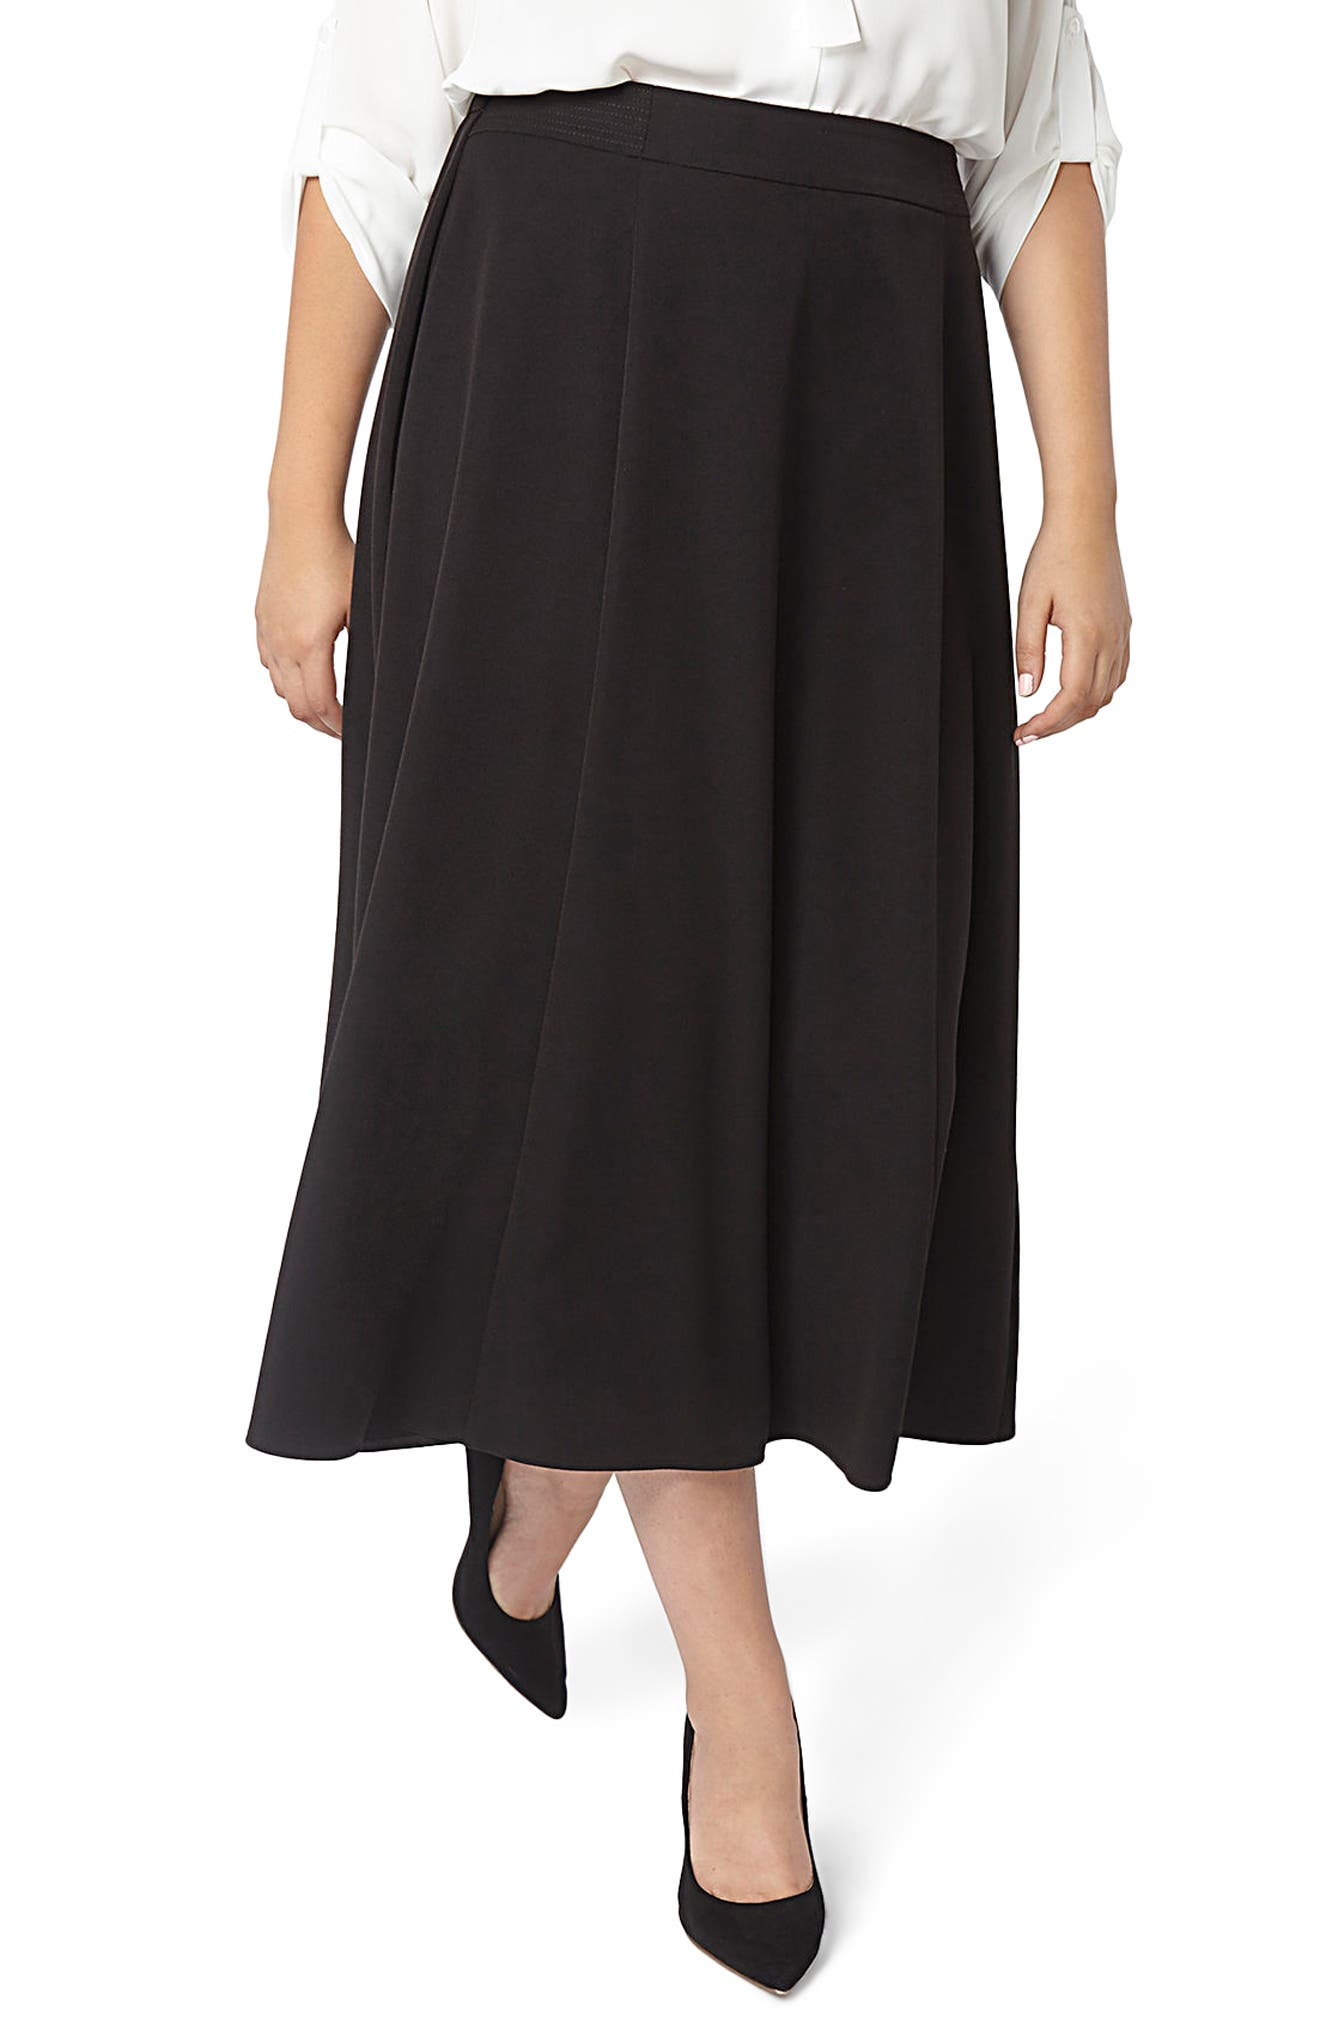 Picasso 36 Skirt,                         Main,                         color, 001